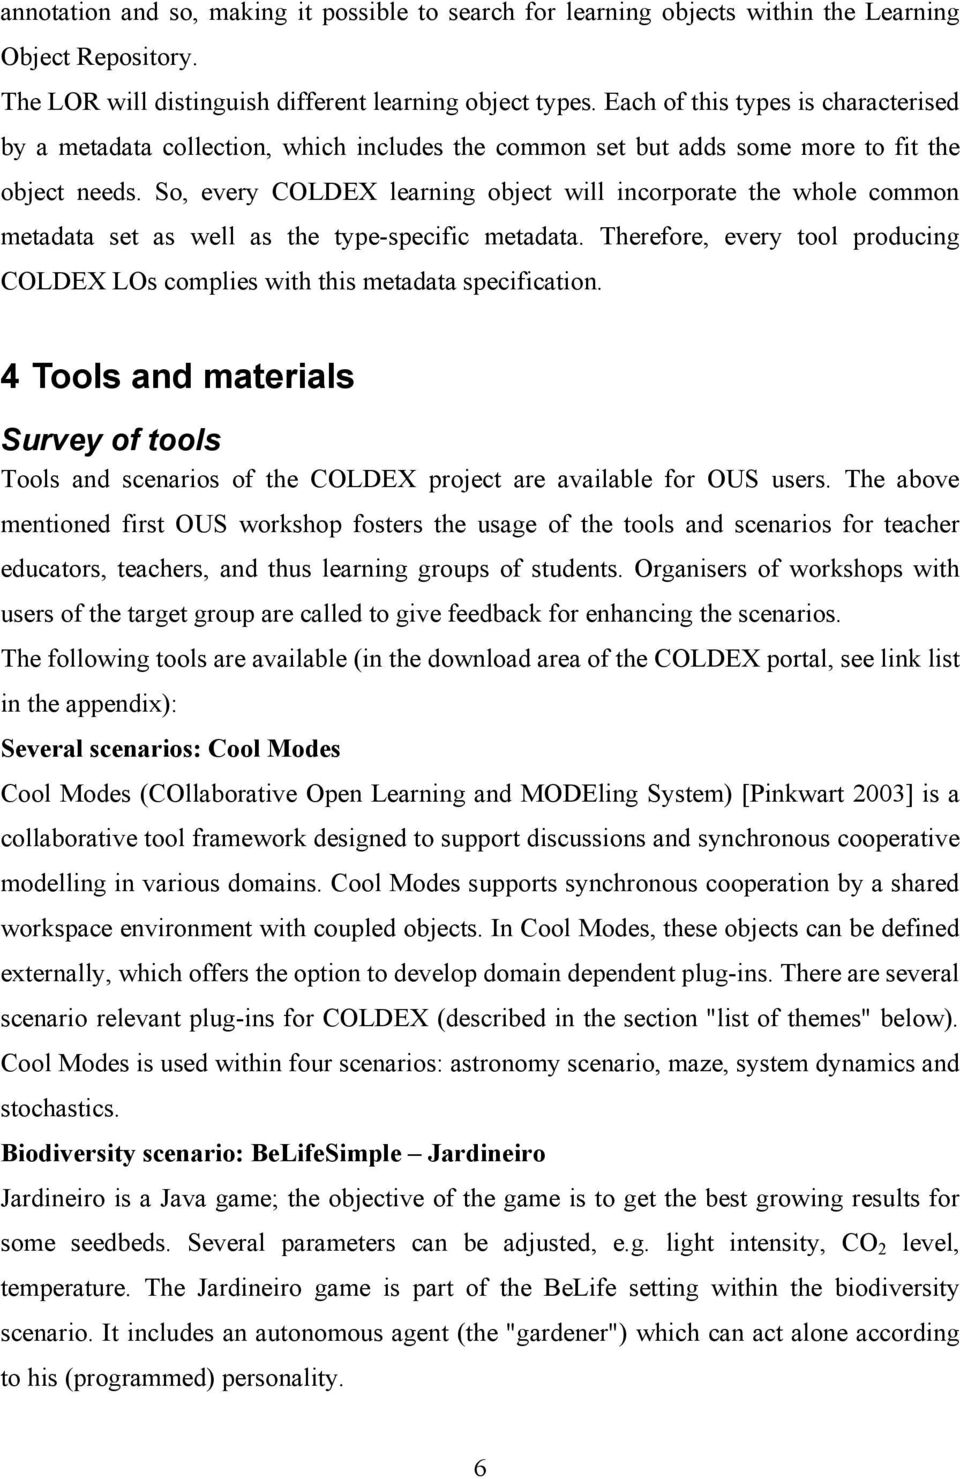 So, every COLDEX learning object will incorporate the whole common metadata set as well as the type-specific metadata.